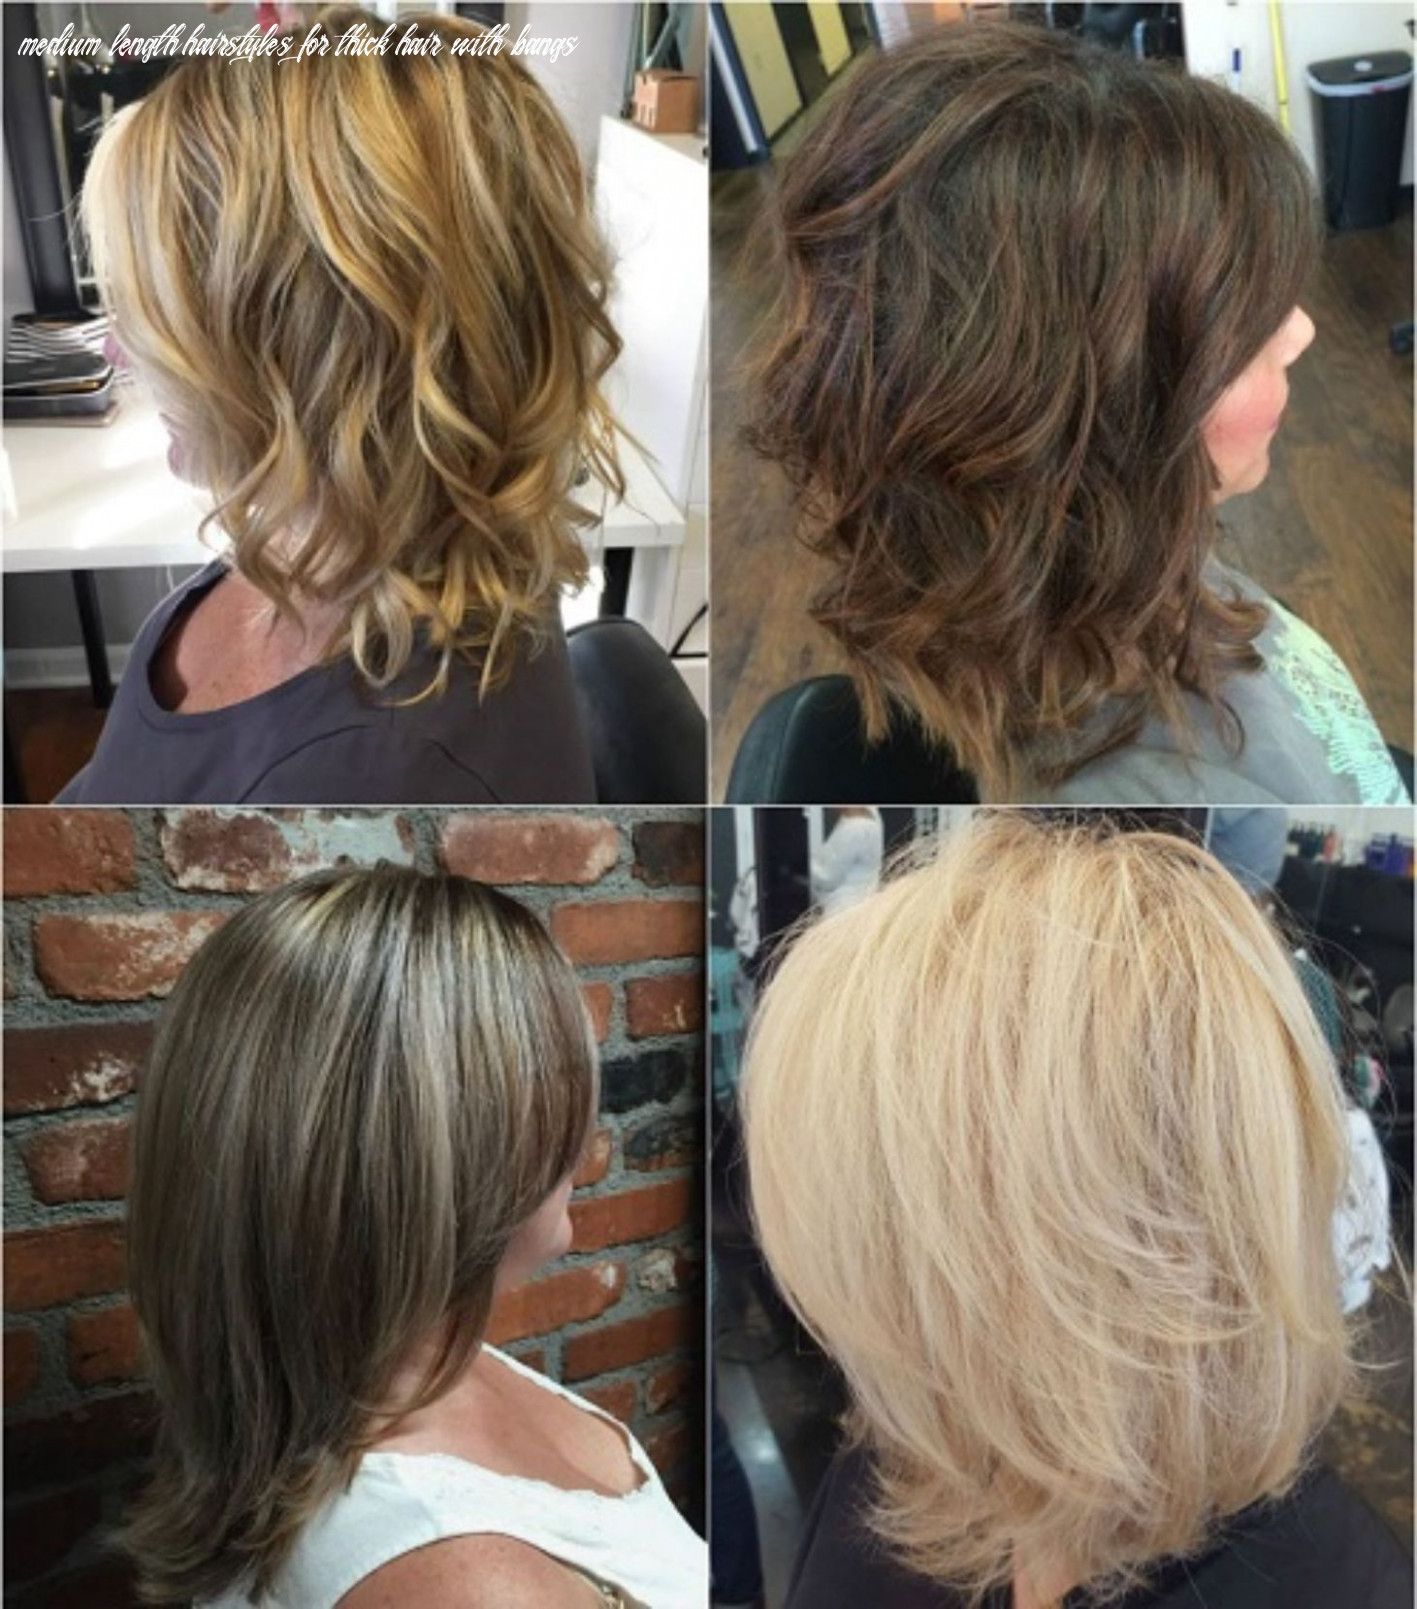 Pin on hairrcuts medium length hairstyles for thick hair with bangs